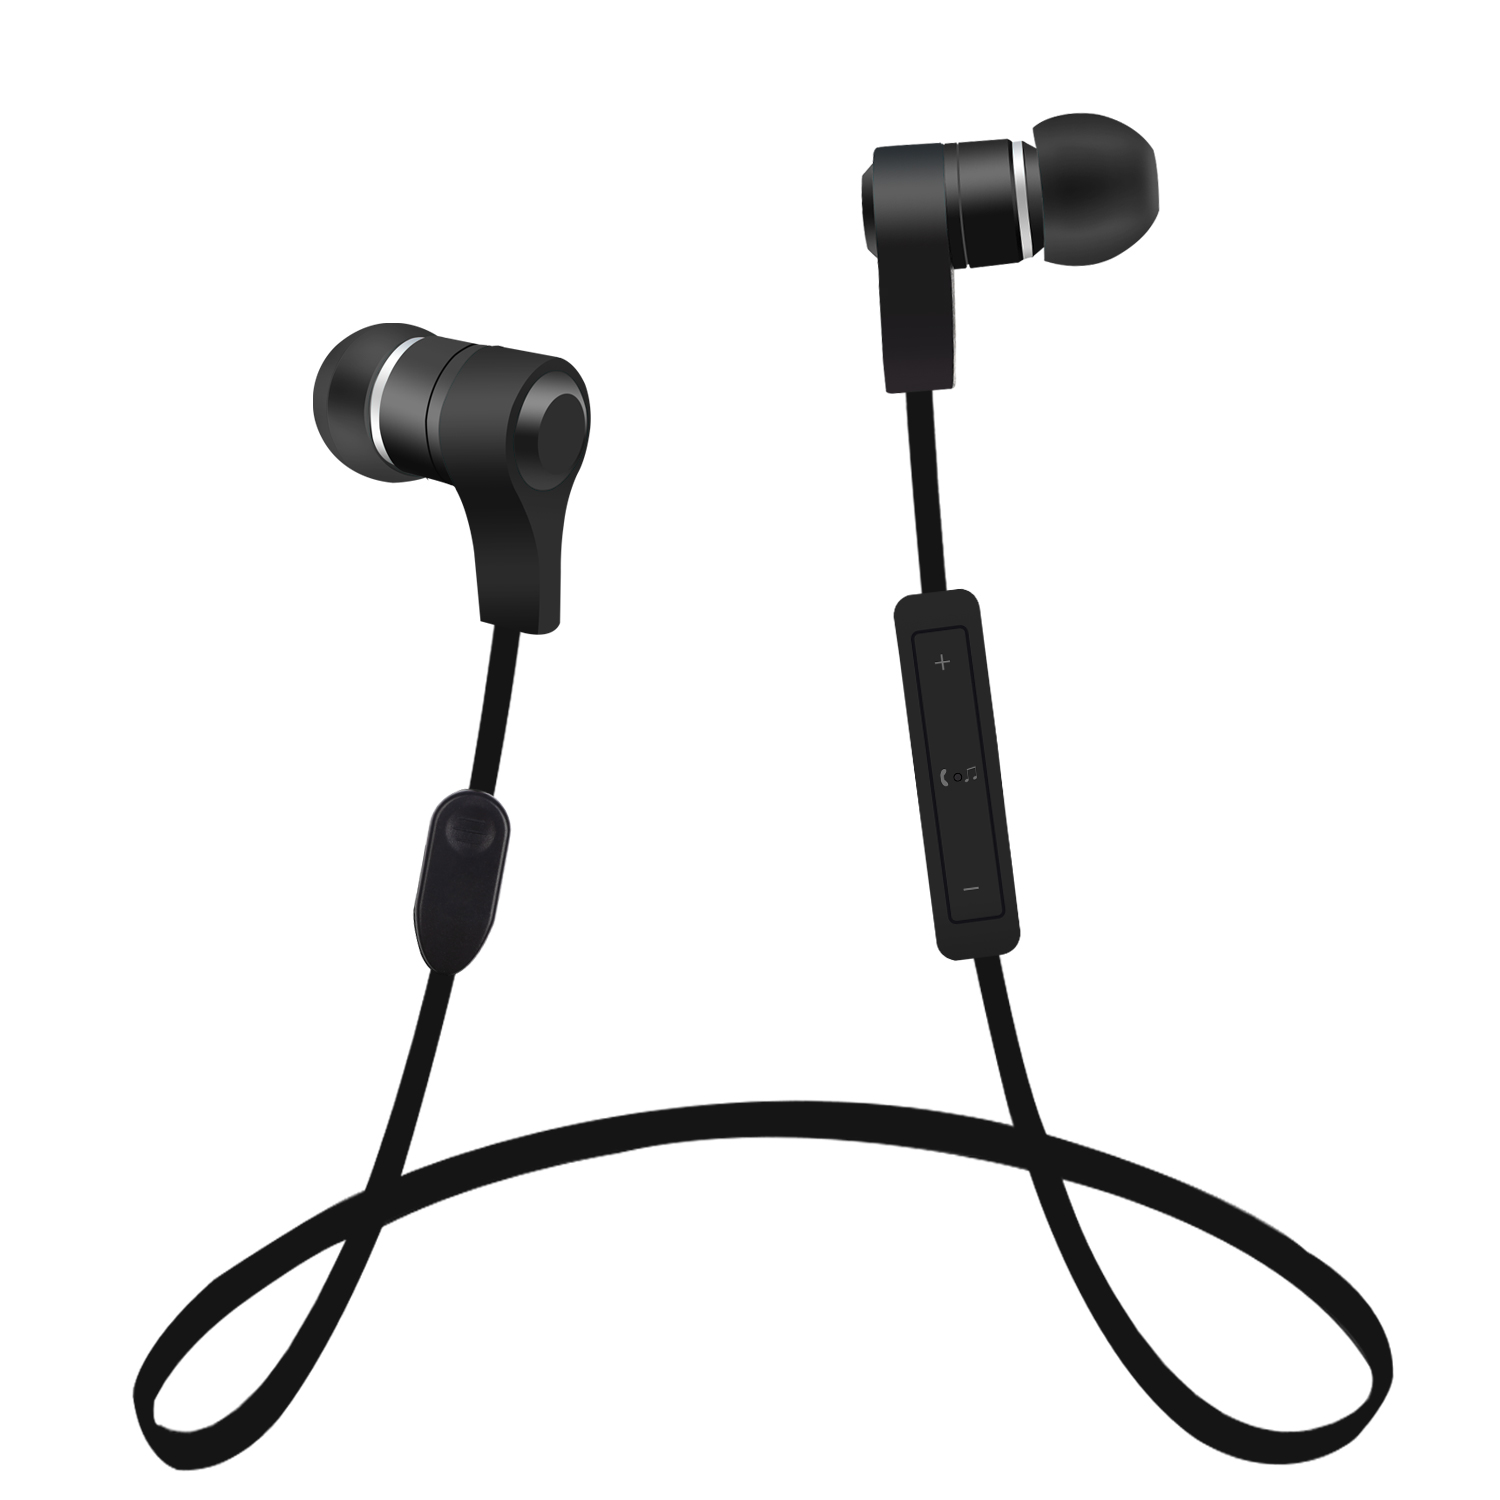 Xiomi earphones bluetooth - earphones bluetooth shures